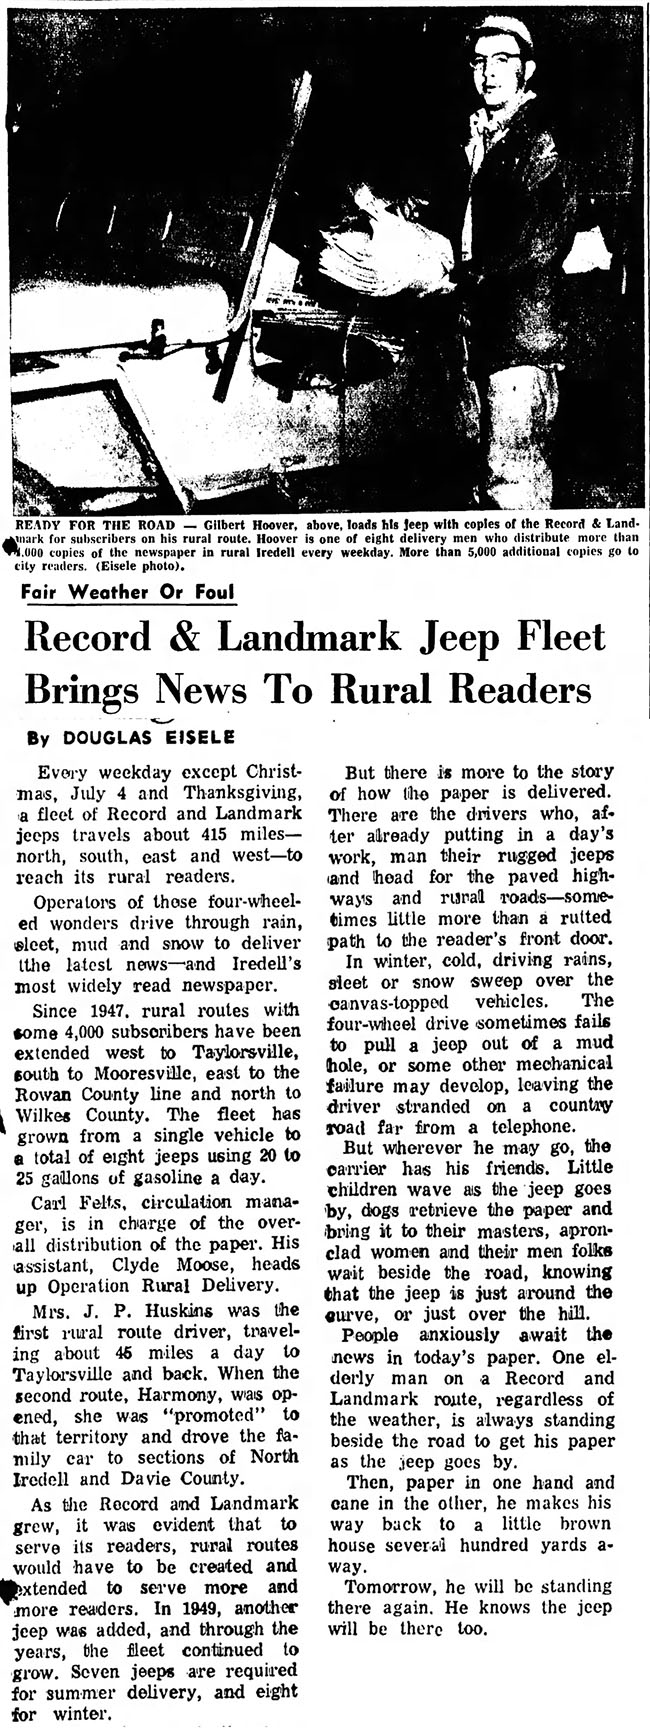 1955-12-29-statesville-record-and-landmark-jeep-newspaper-delivery-lores